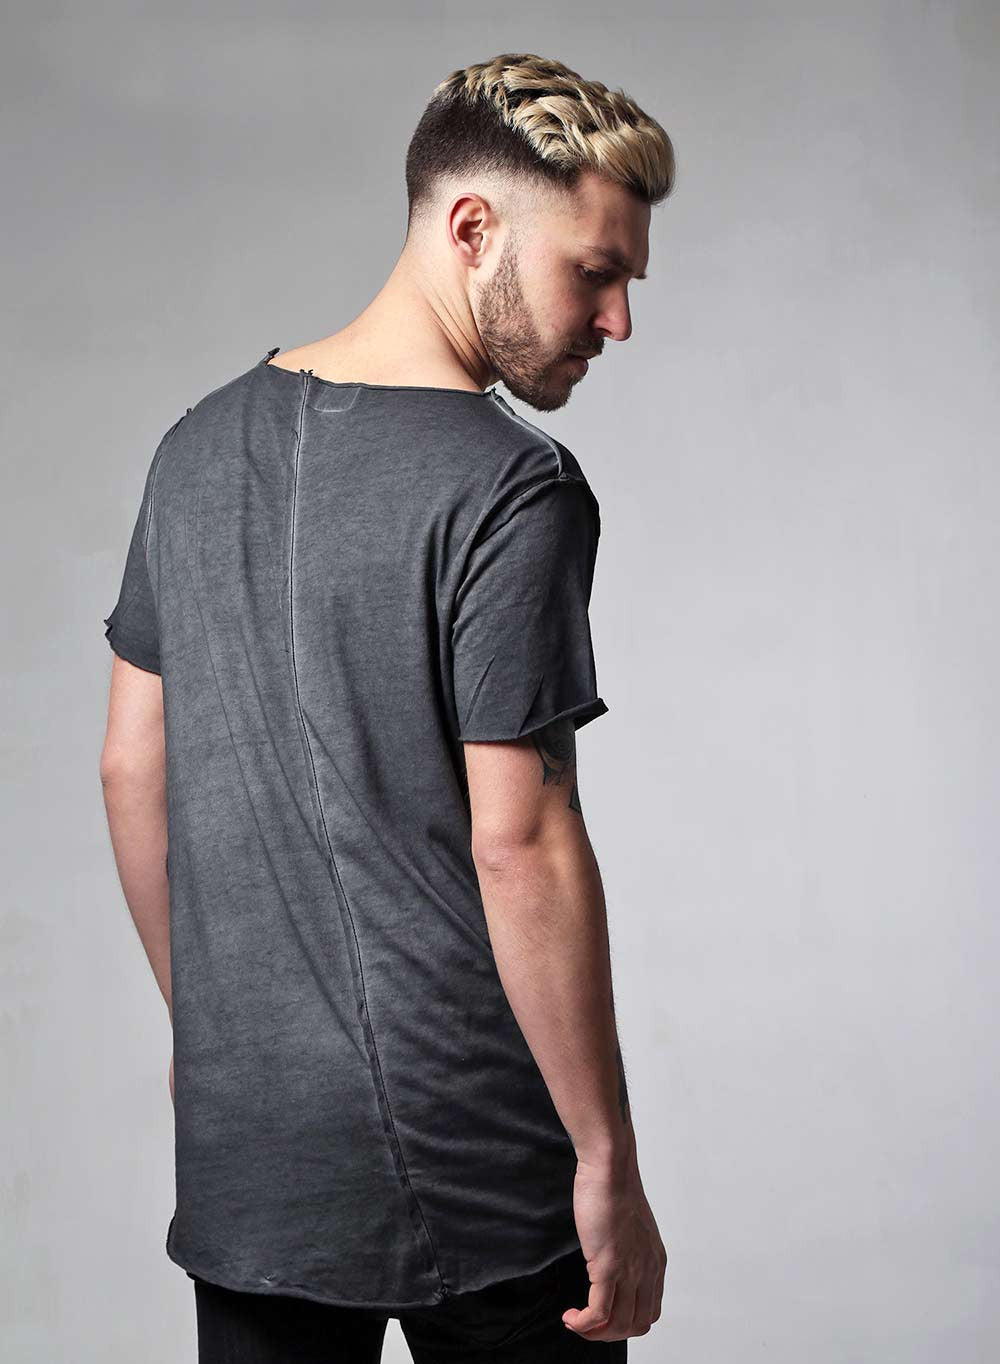 Diagonal Stitch Acid Wash Charcoal T-shirt - LoveClothing.com - 2